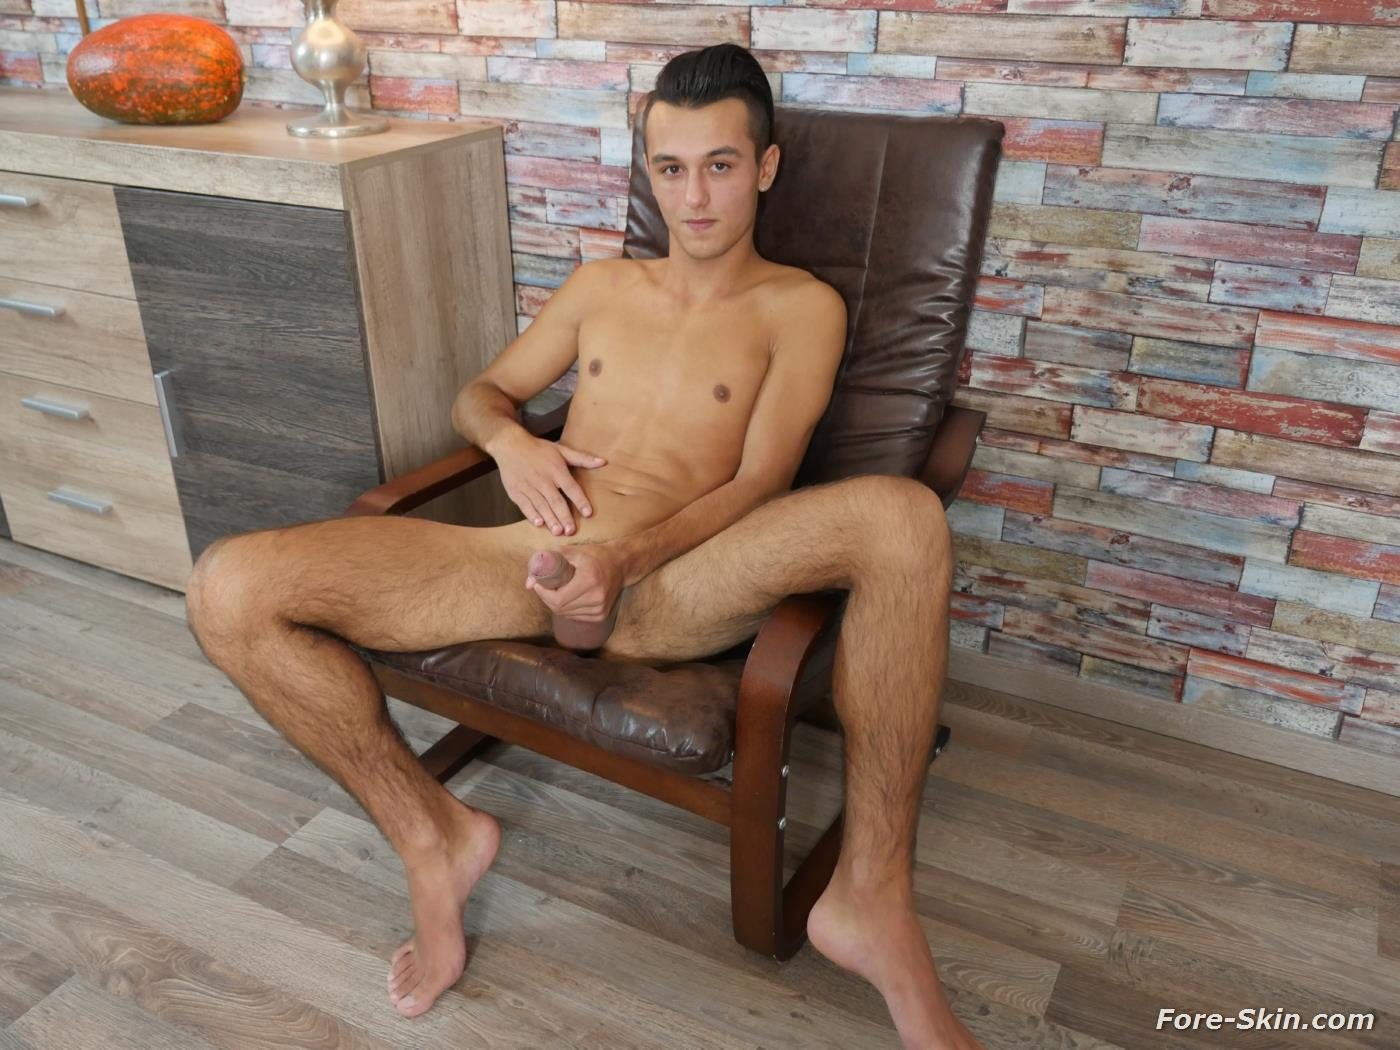 Fore Skin Martin Muse Twink Twink Jerks His Big Uncut Cock Amateur Gay Porn 13 Hairy Legged Twink Plays With His Foreskin And Big Uncut Cock